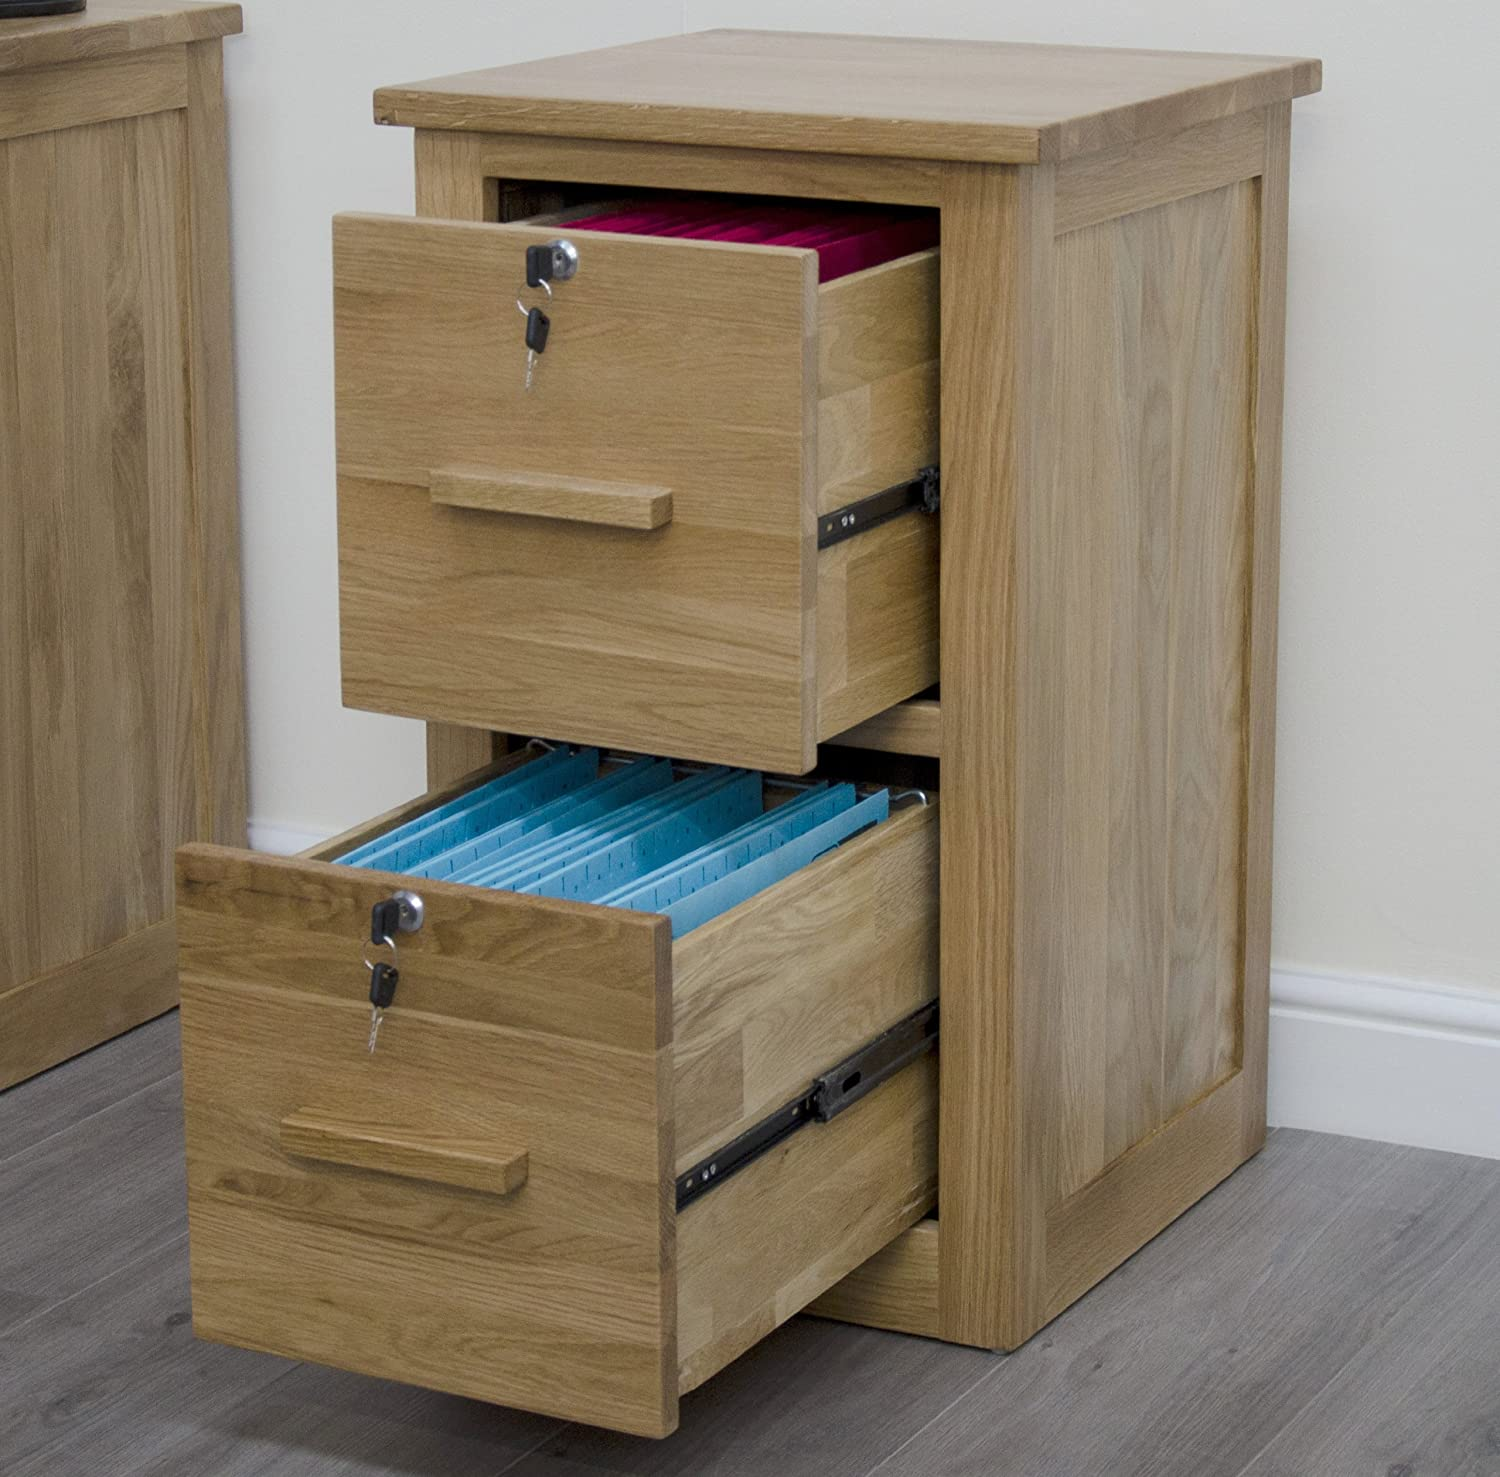 Arden Solid Oak Furniture Office Filing Cabinet With Locks: Amazon ...